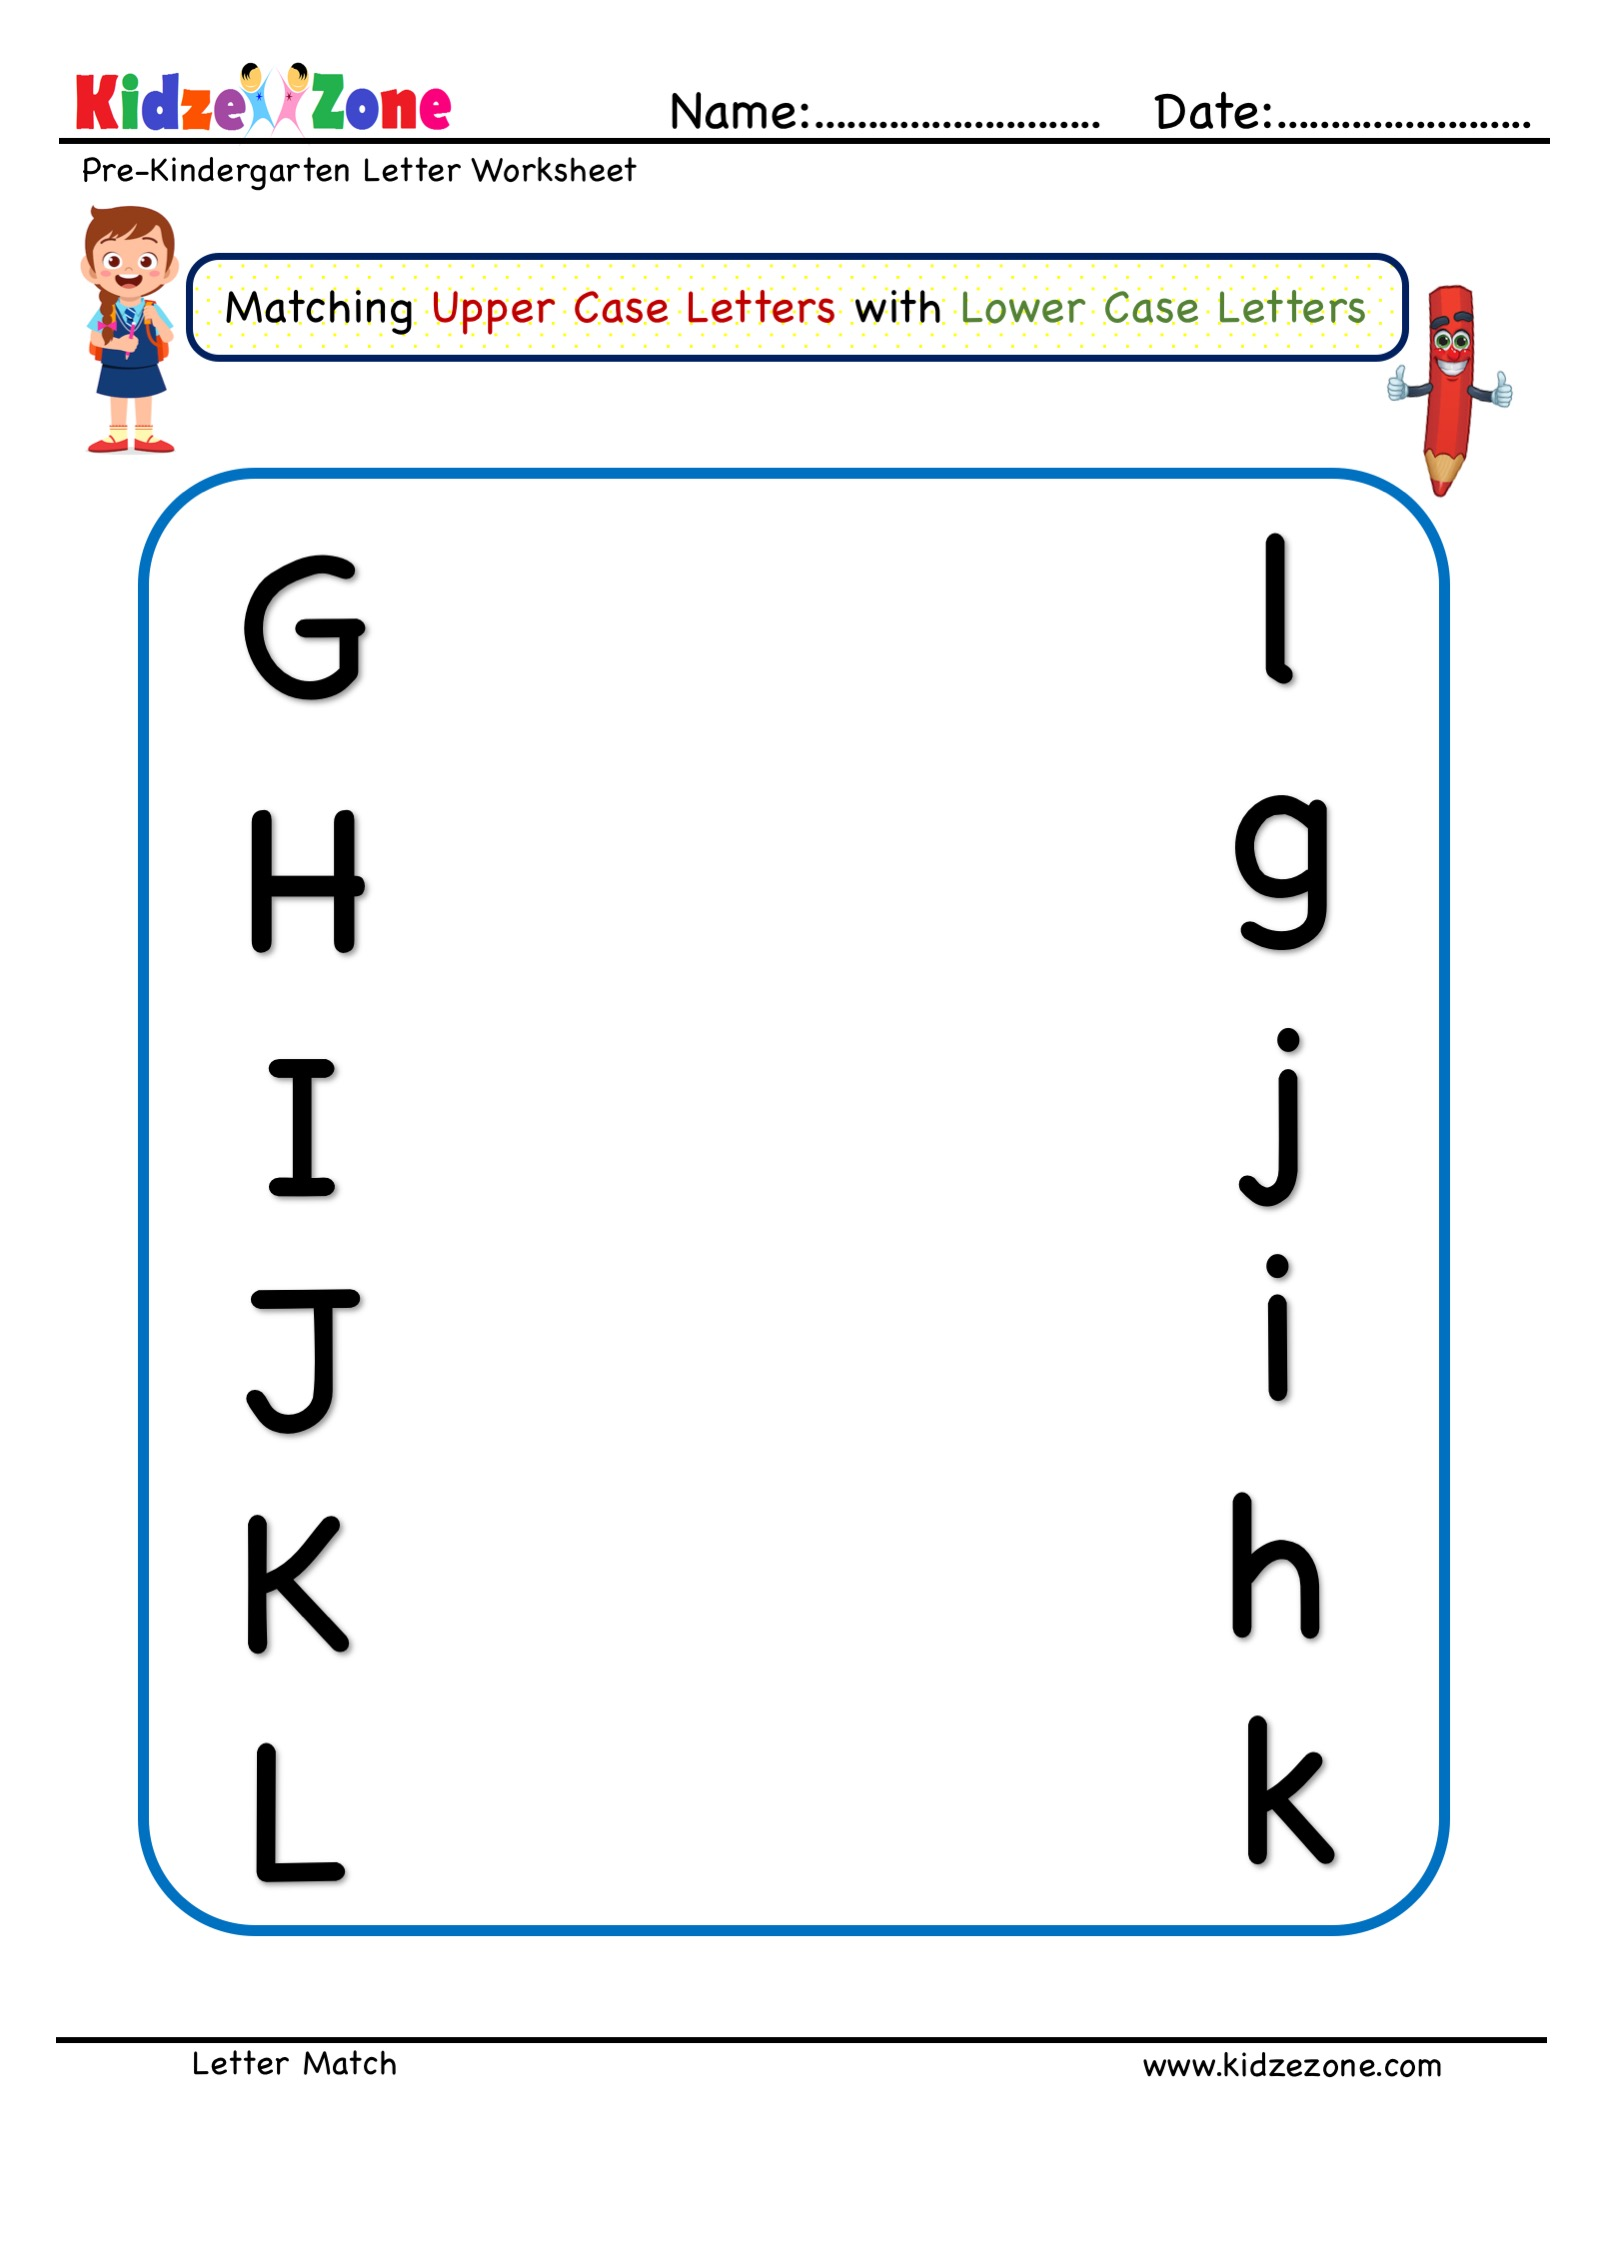 Preschool Letter Matching Upper Case To Lower Case Worksheet 3